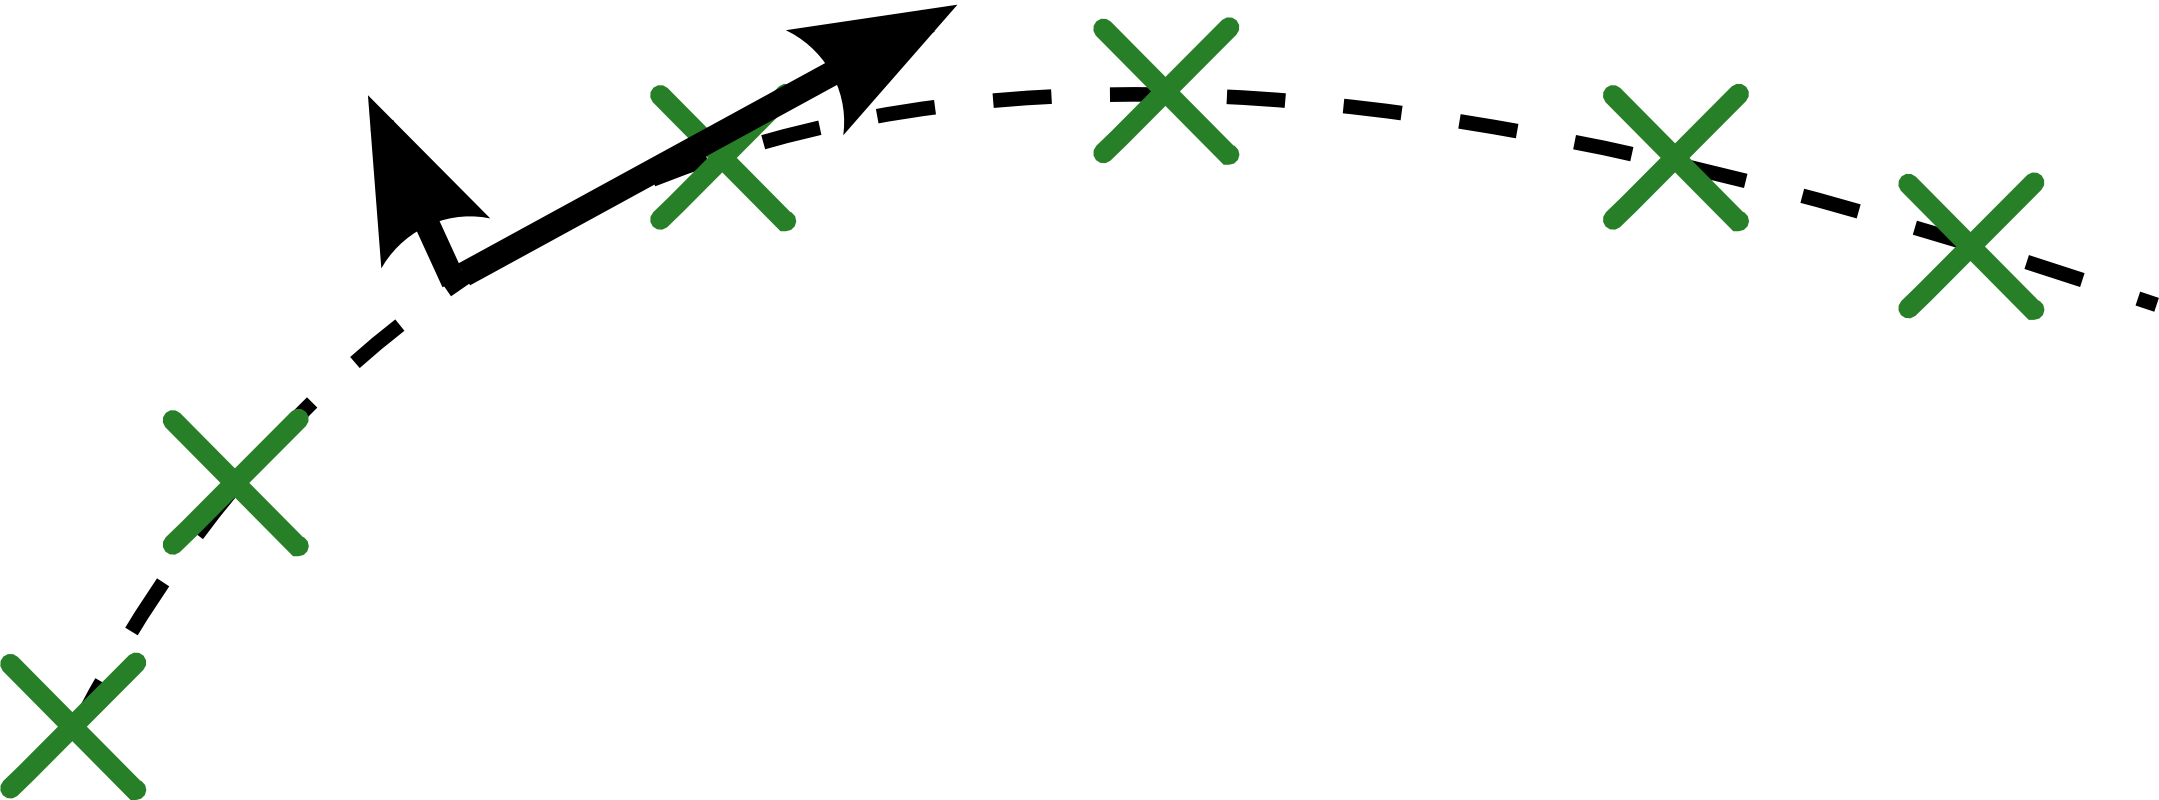 Regularization forces the auto-encoder to become less sensitive to the input, but minimizing reconstruction error forces it to remain sensitive to variations along the manifold of high density. Hence the representation and reconstruction end up capturing well variations on the manifold while mostly ignoring variations orthogonal to it.